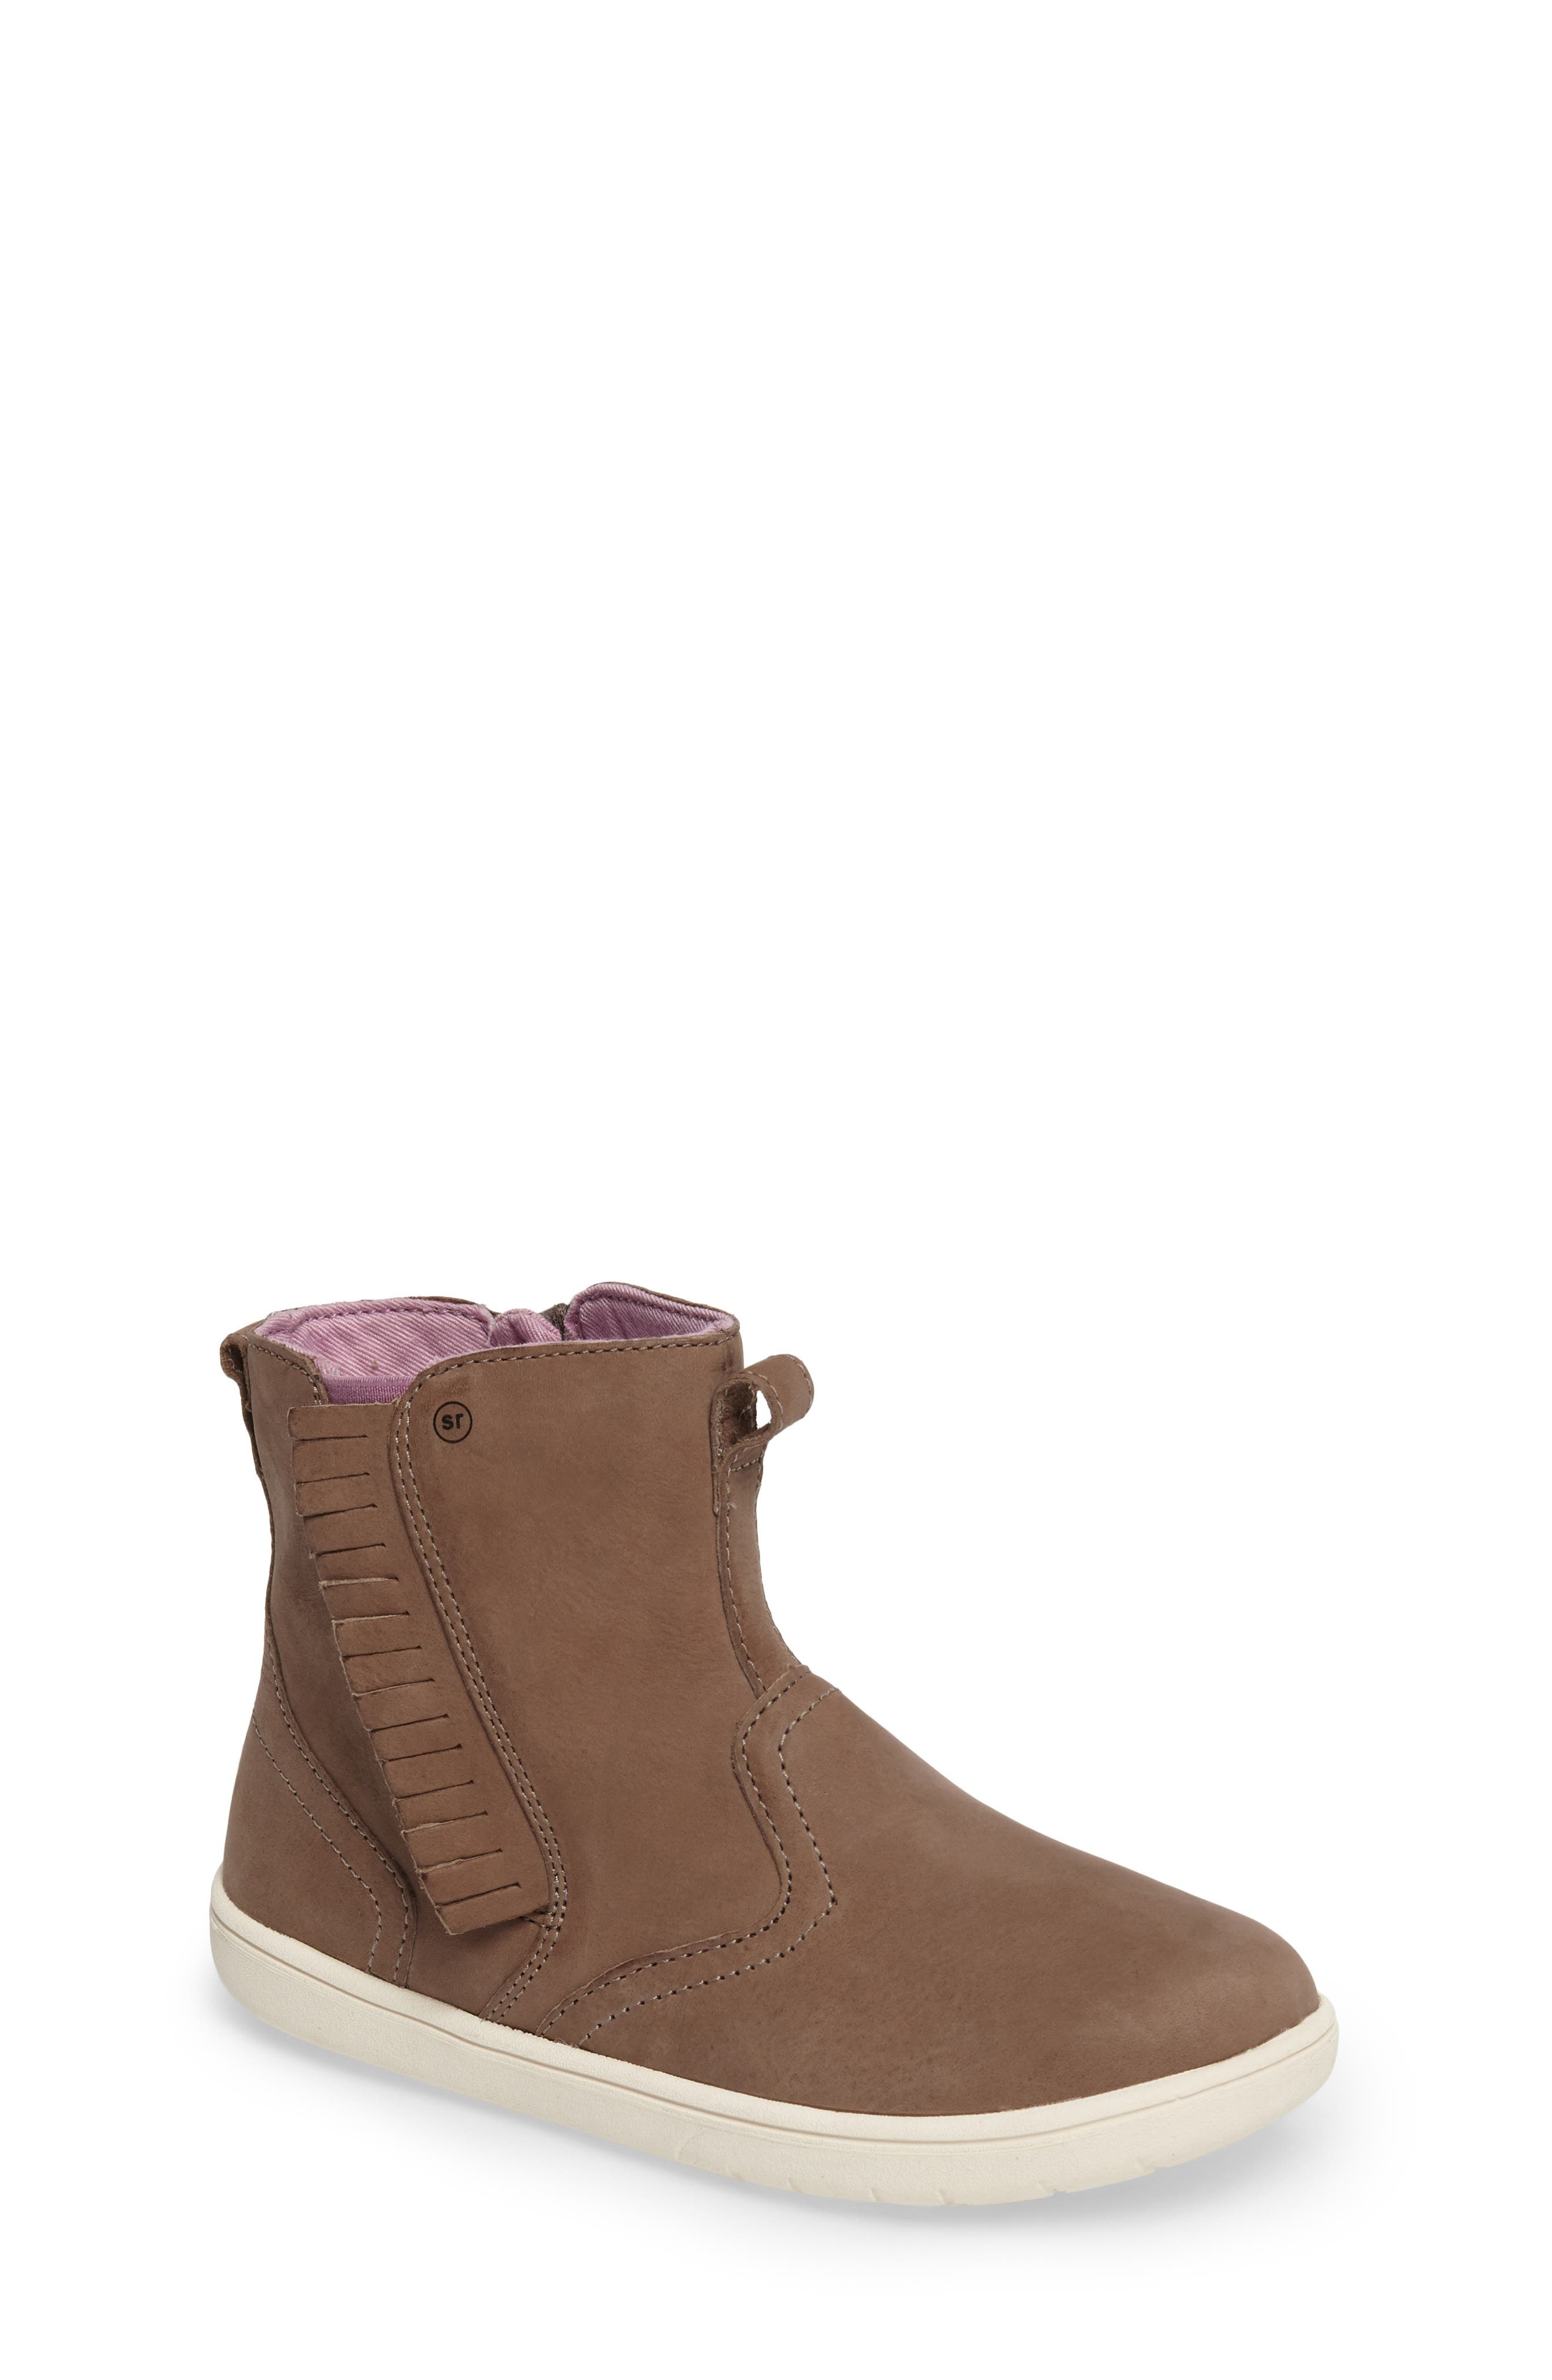 STRIDE RITE,                             SRtech<sup>™</sup> Maxine Fringed Bootie,                             Main thumbnail 1, color,                             210